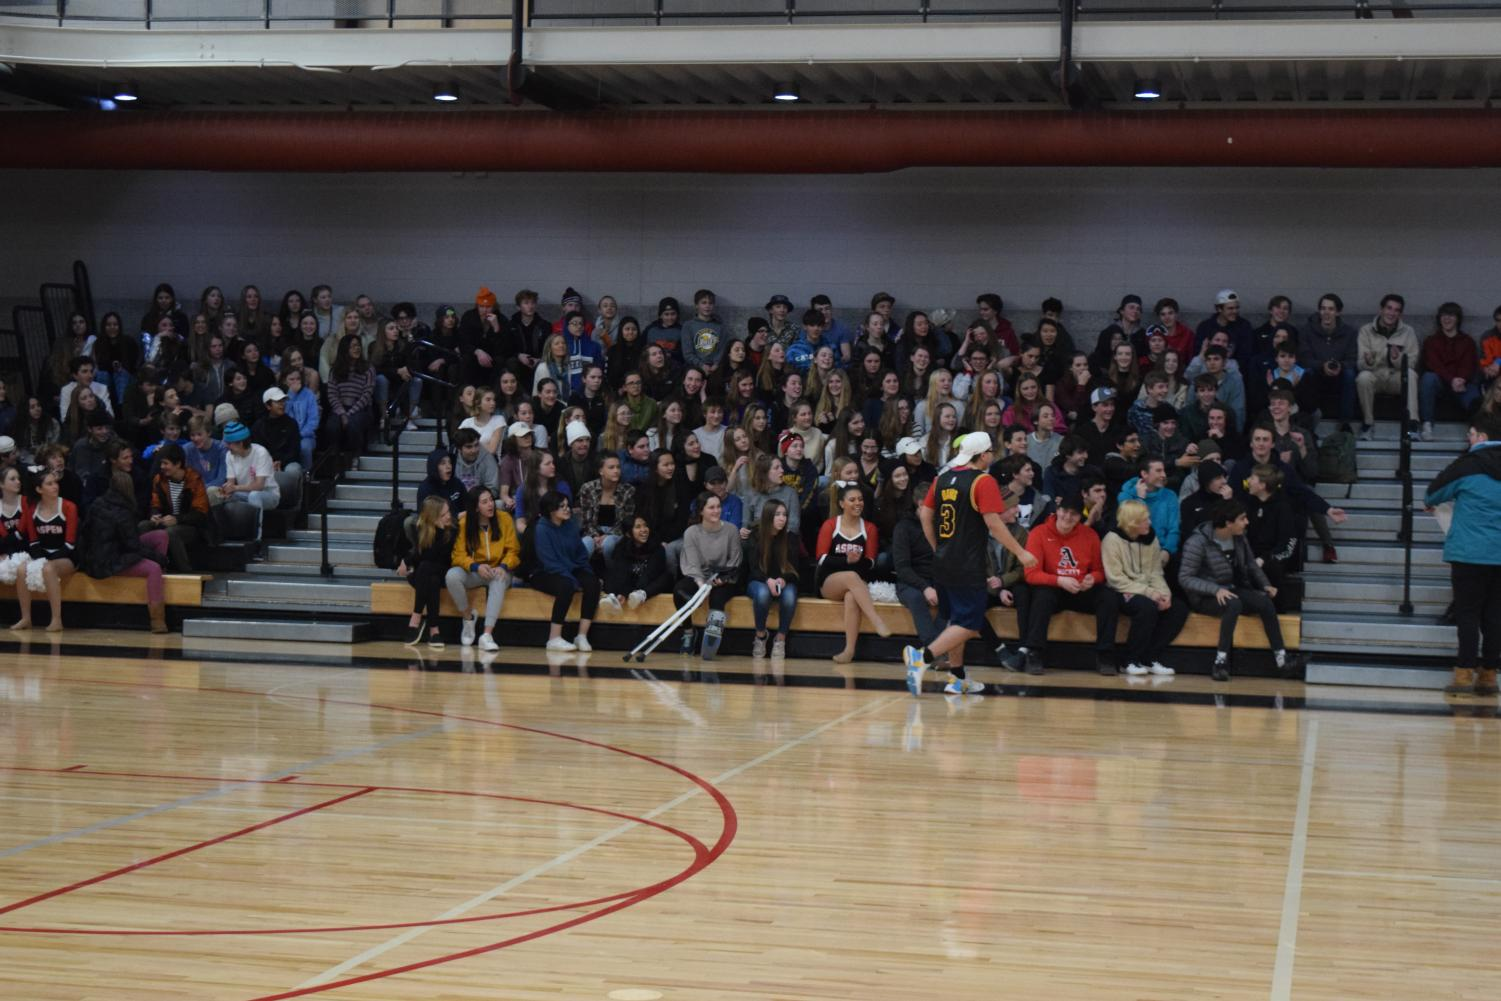 Winter pep rally this year at AHS, where sadly only half of the senior class showed up to sport their school spirit.